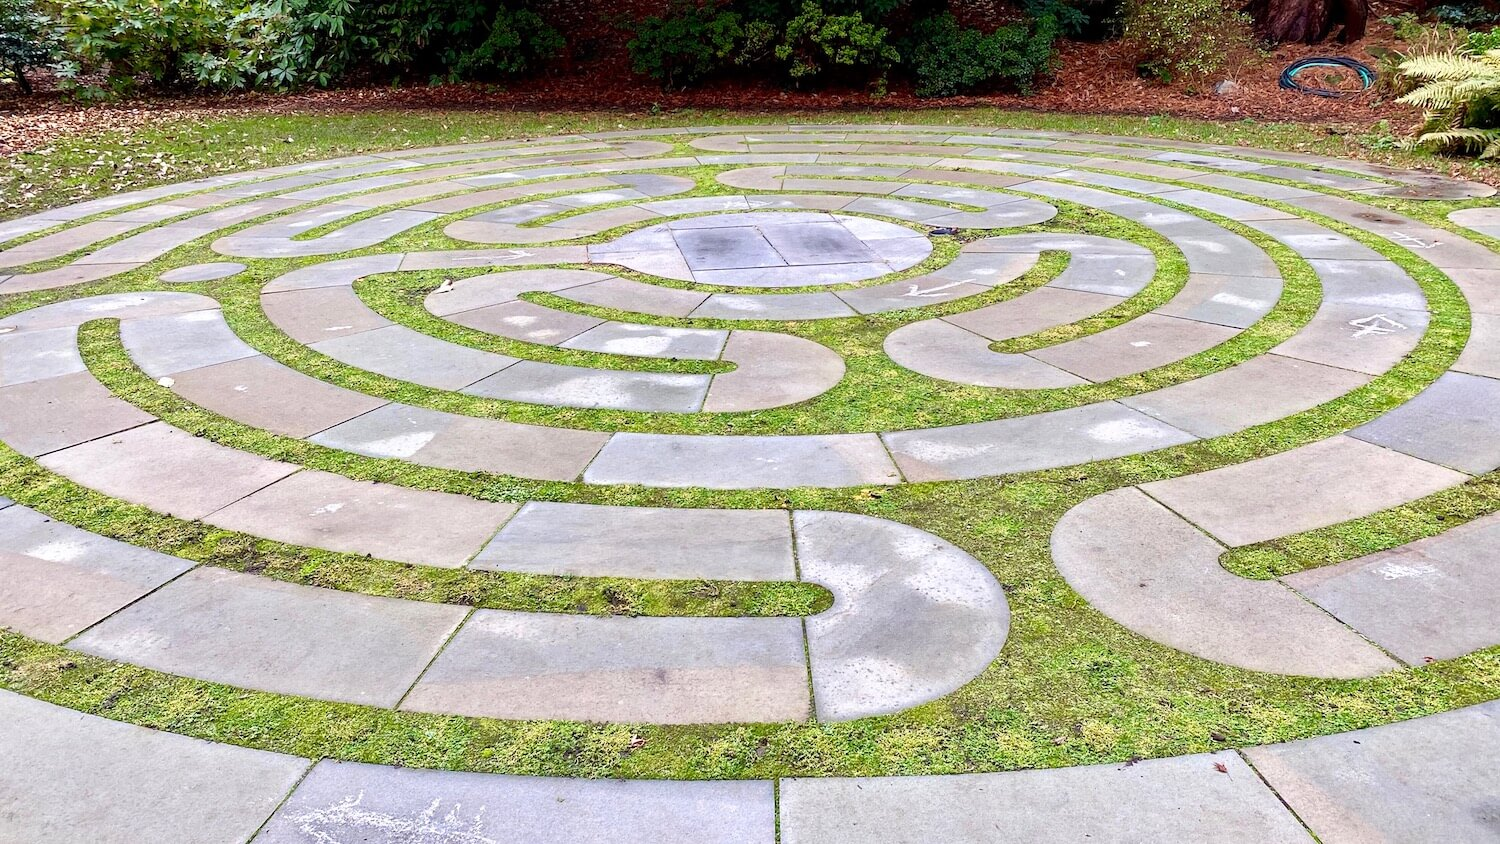 A maze made of stones wraps around the lawn creating a circular shape overall.